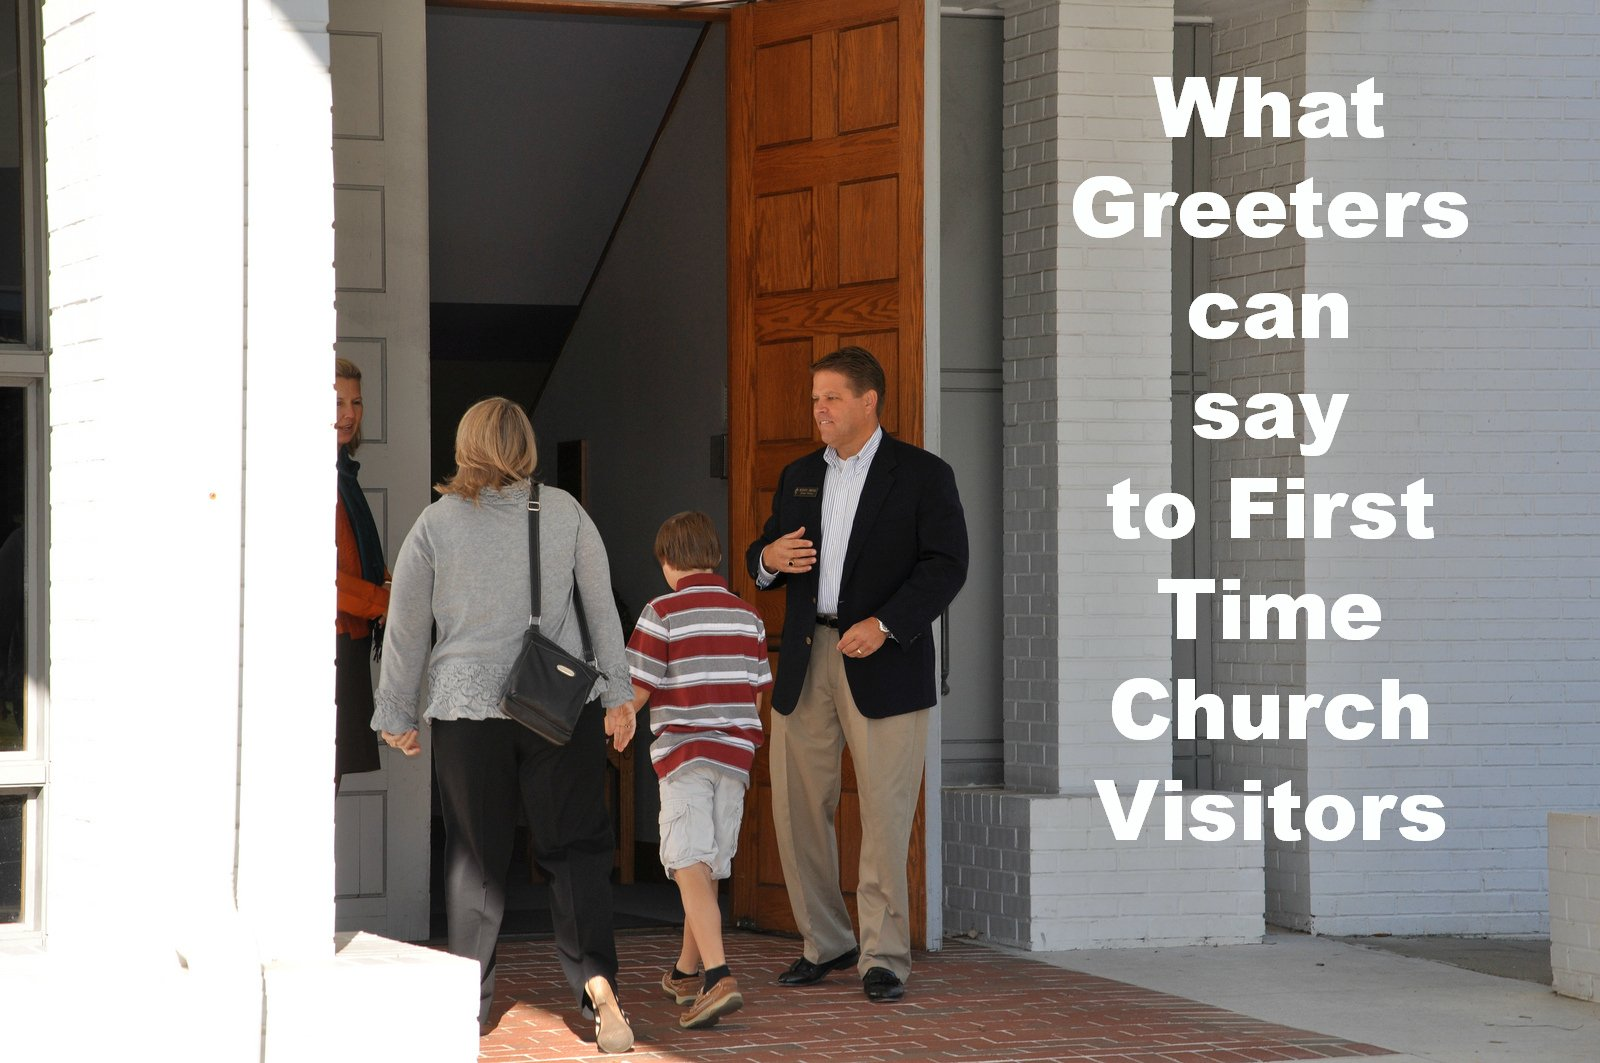 To say to greet church visitors what to say to greet church visitors kristyandbryce Image collections